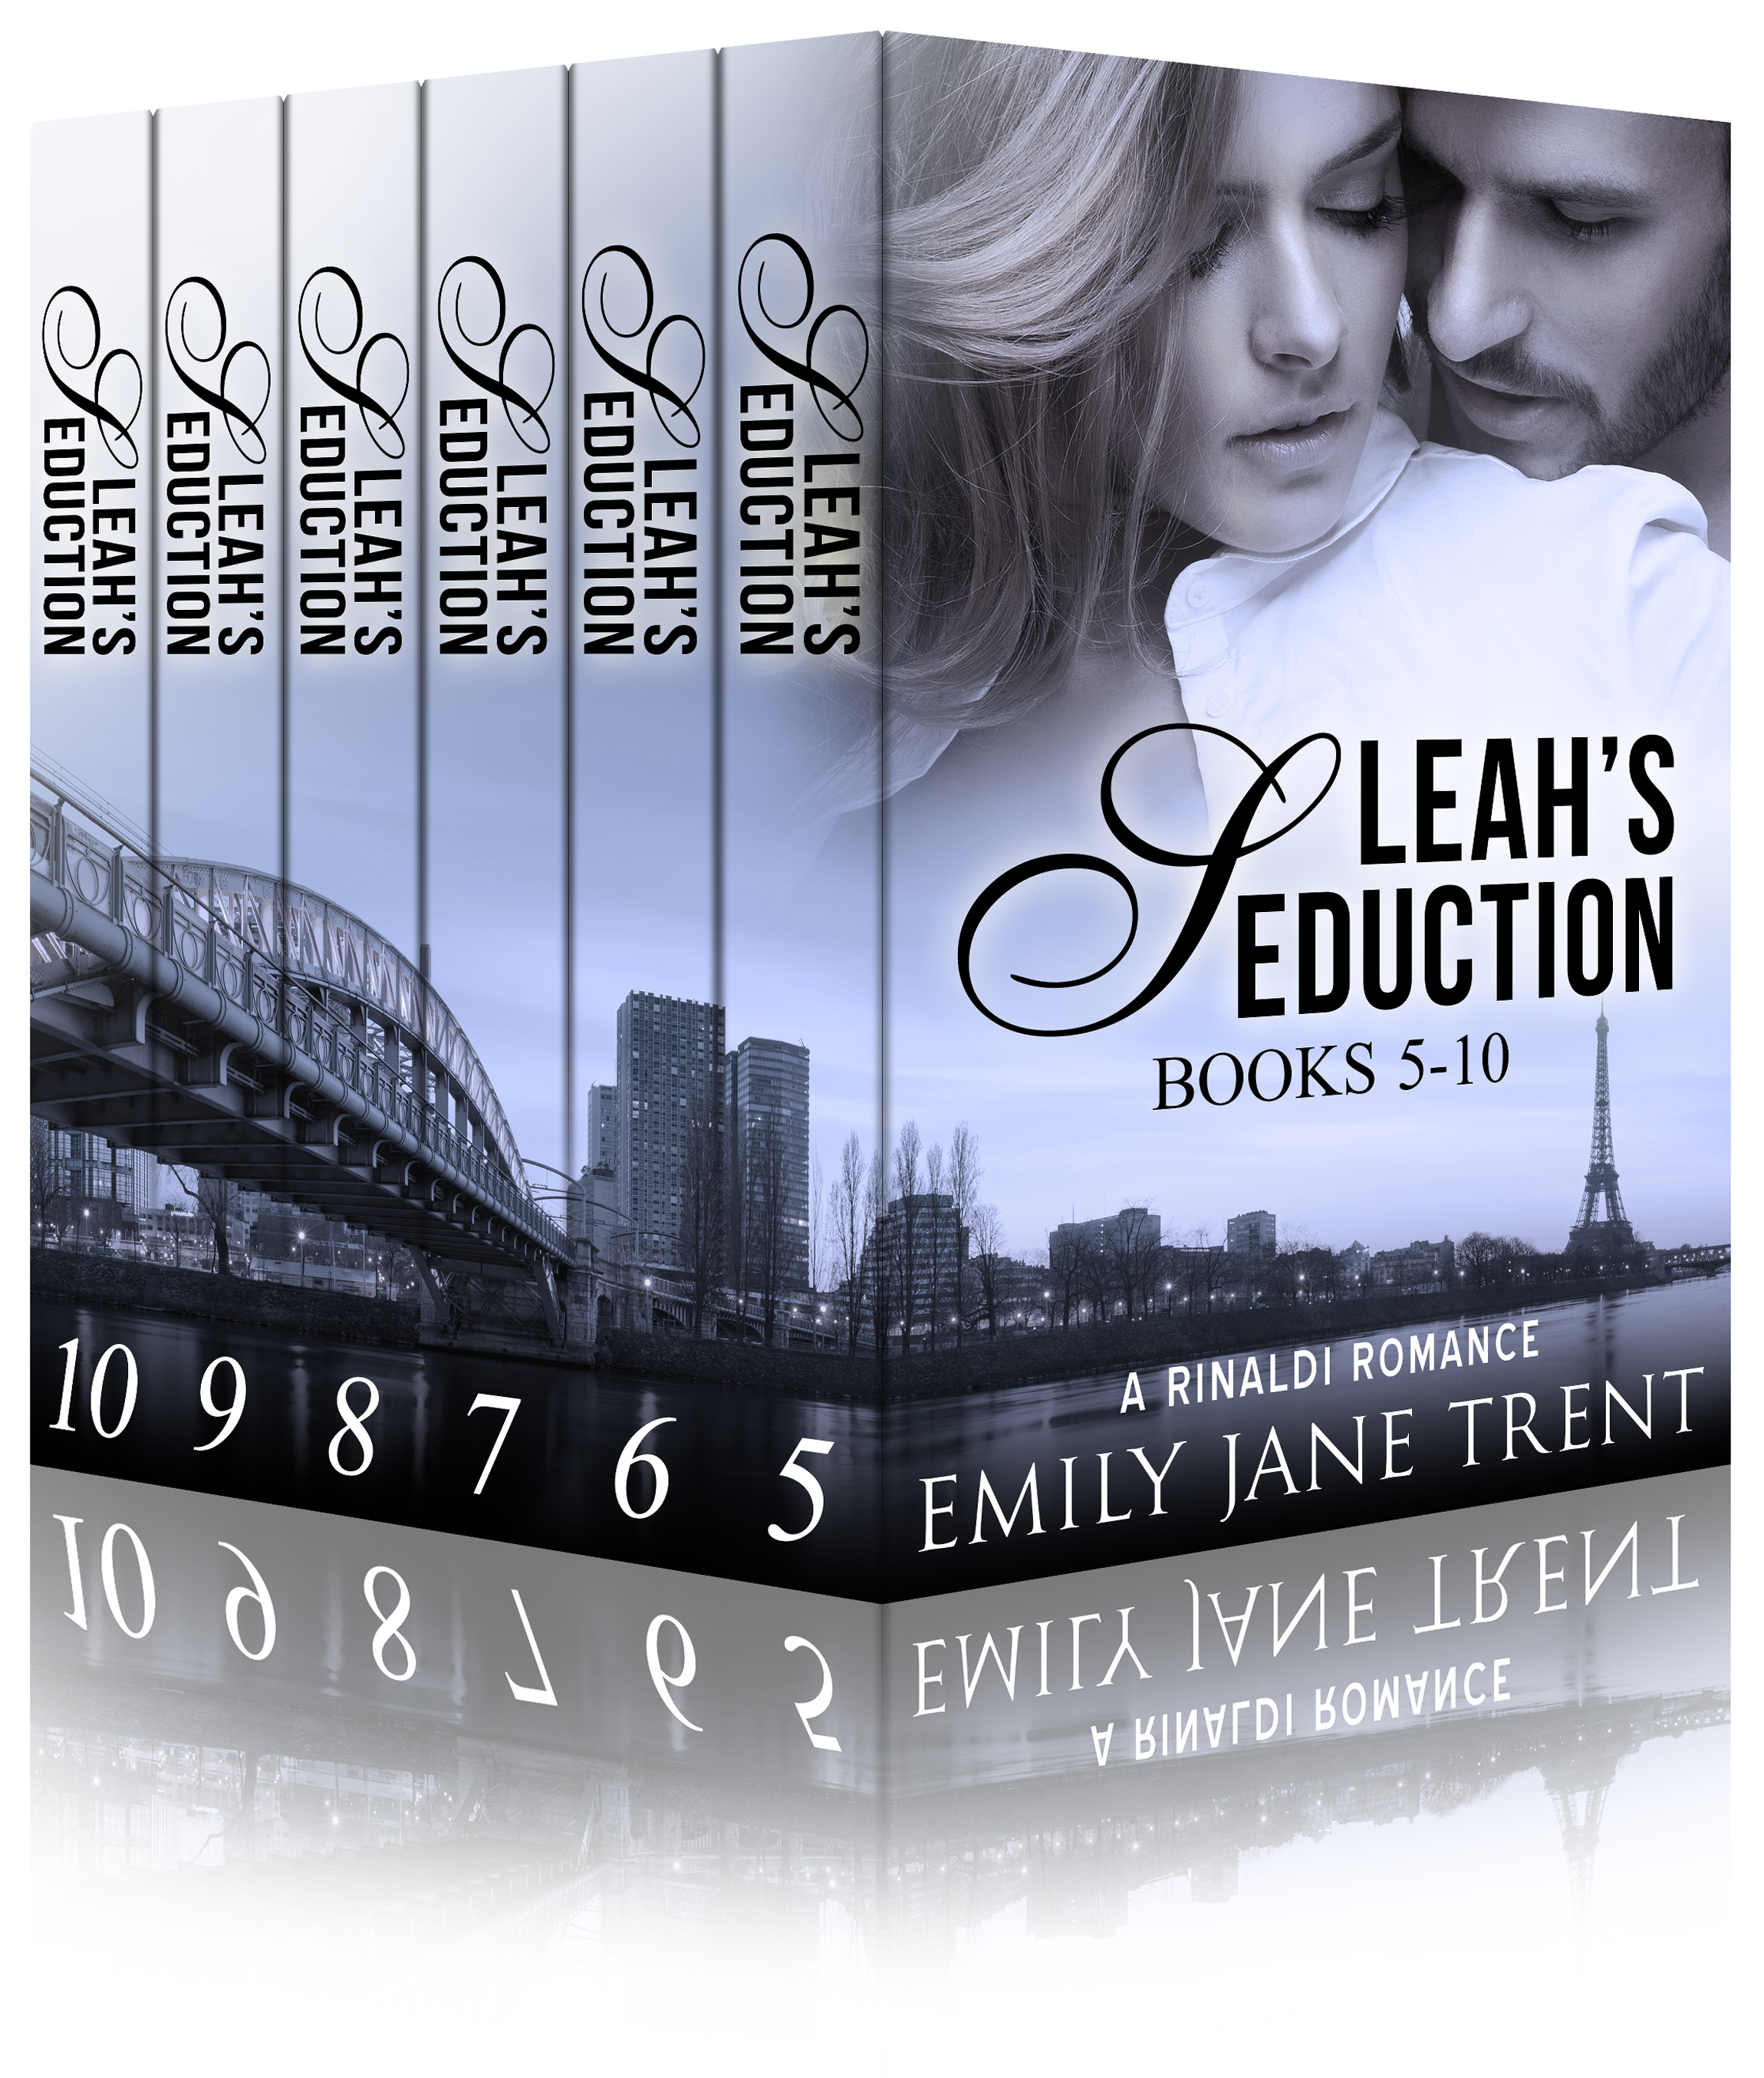 Leah's Seduction Books 5-10